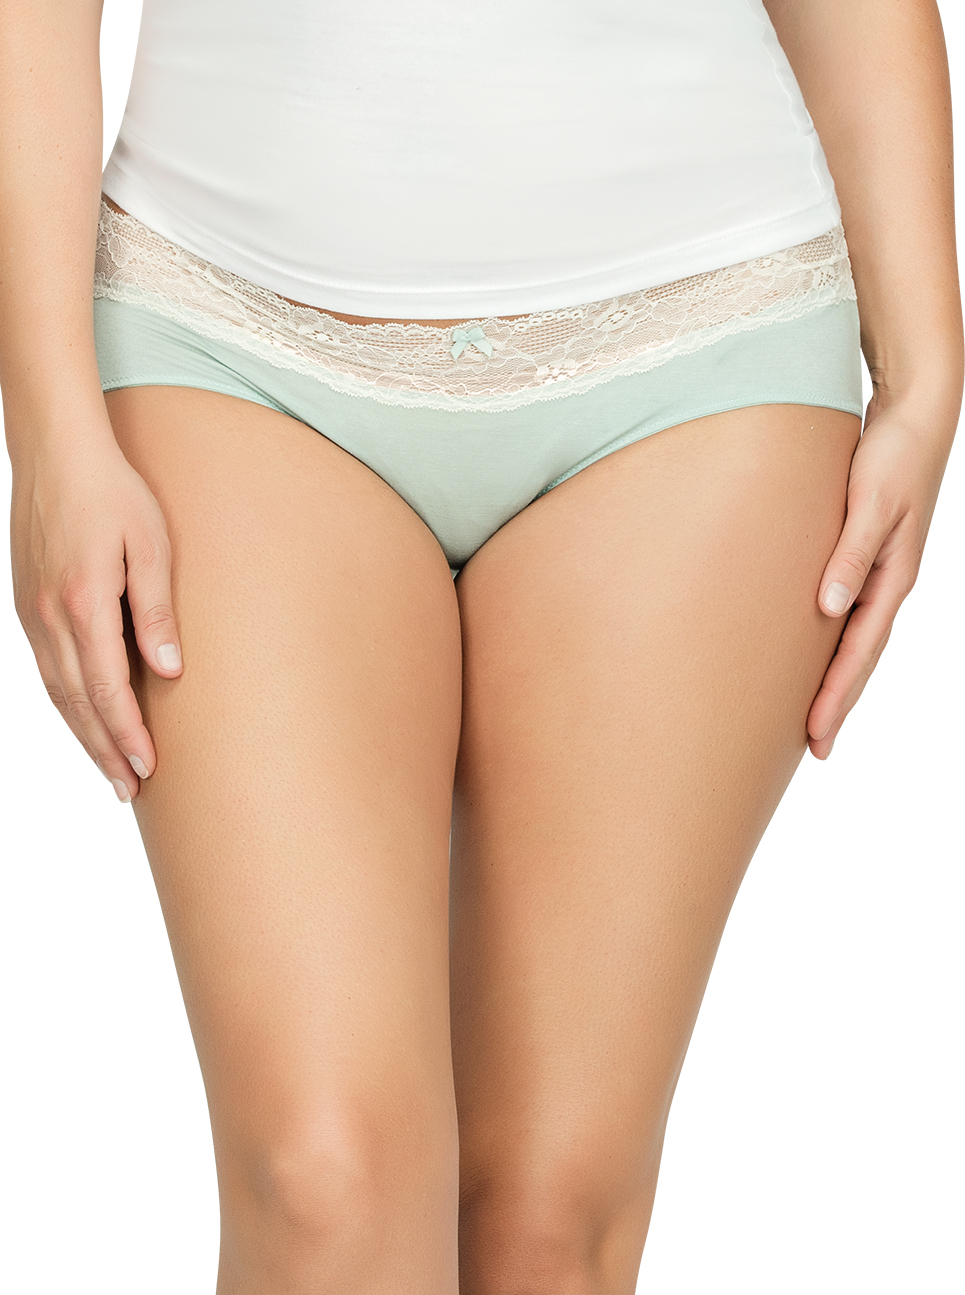 ParfaitPanty SoEssential HipsterPP503 Surf Front - Panty So Essential Hipster - Surf- PP503